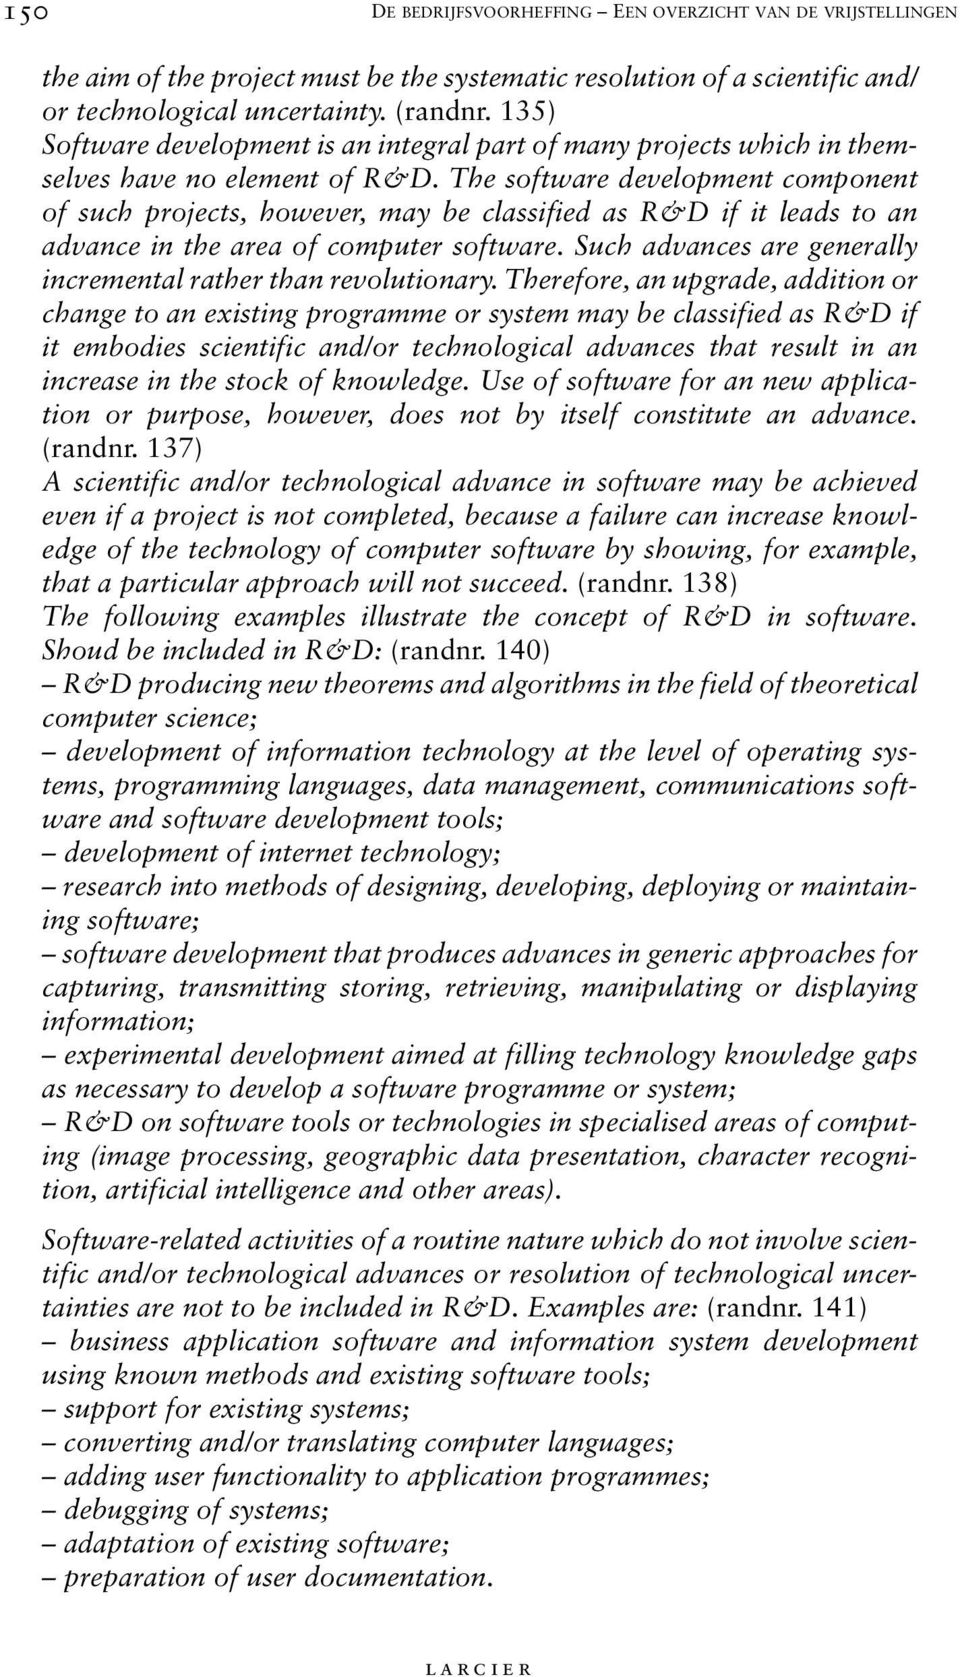 The software development component of such projects, however, may be classified as R&D if it leads to an advance in the area of computer software.